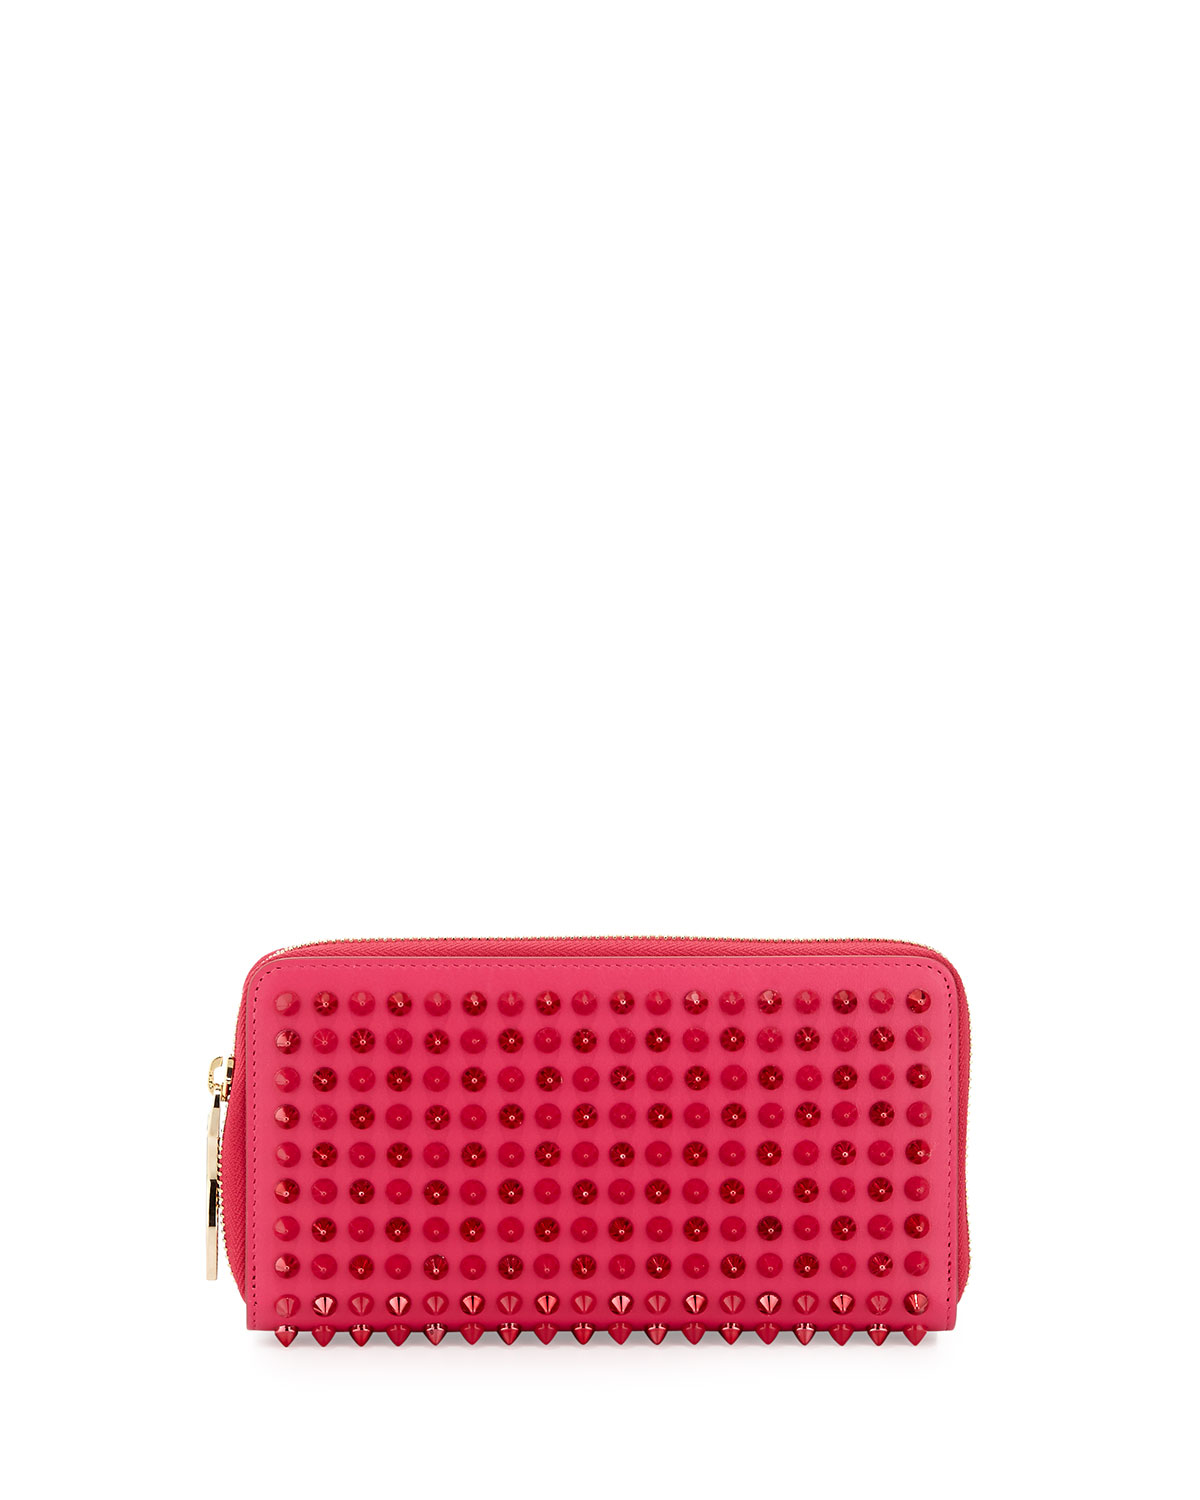 4be2c30c36a Christian Louboutin Pink Panettone Spike Stud Continental Wallet